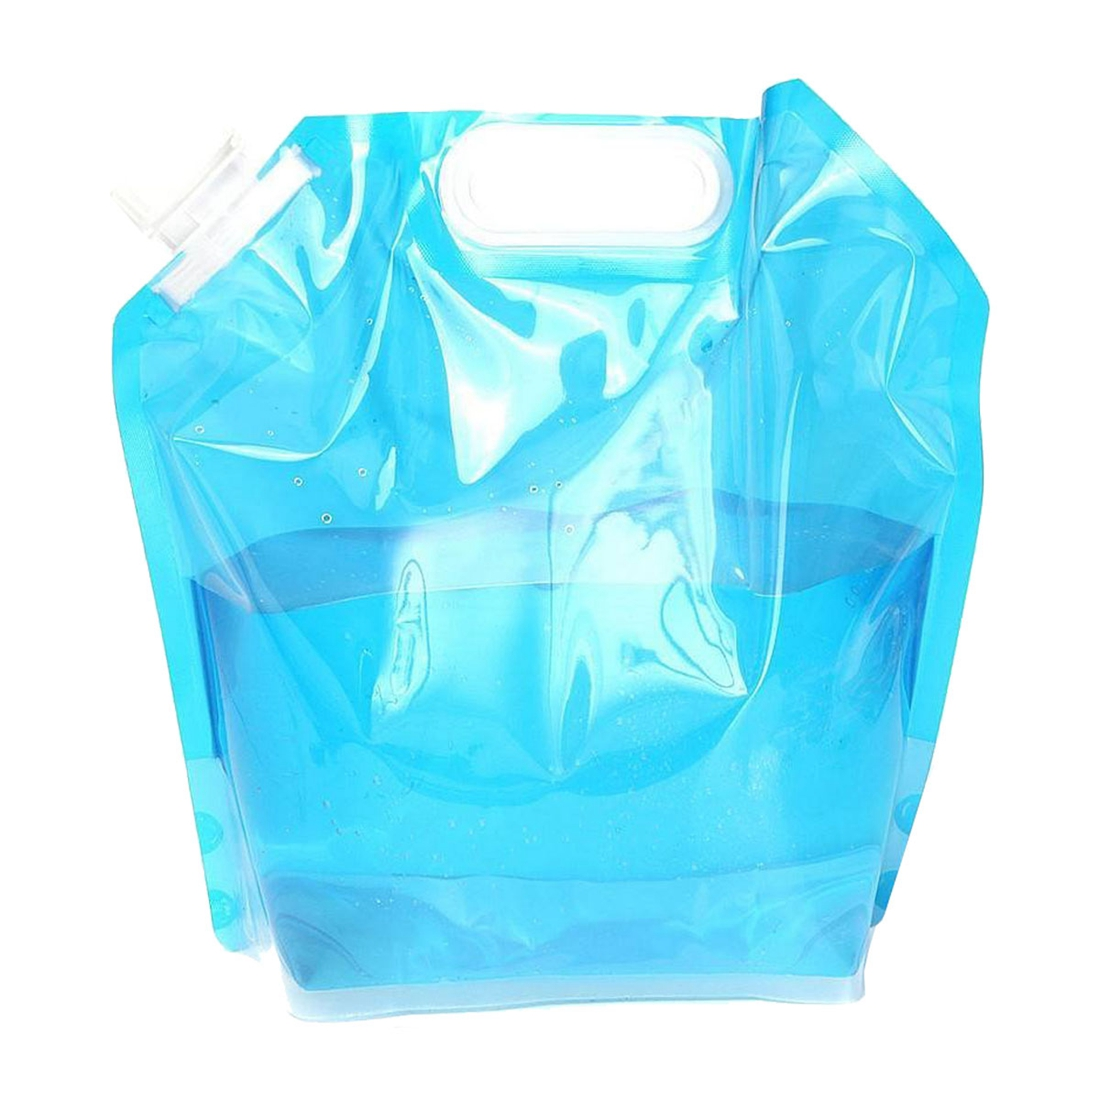 Foldable Water Canister 5L Canister Camping Outdoor Folding Canister Drinking Water transparent blue